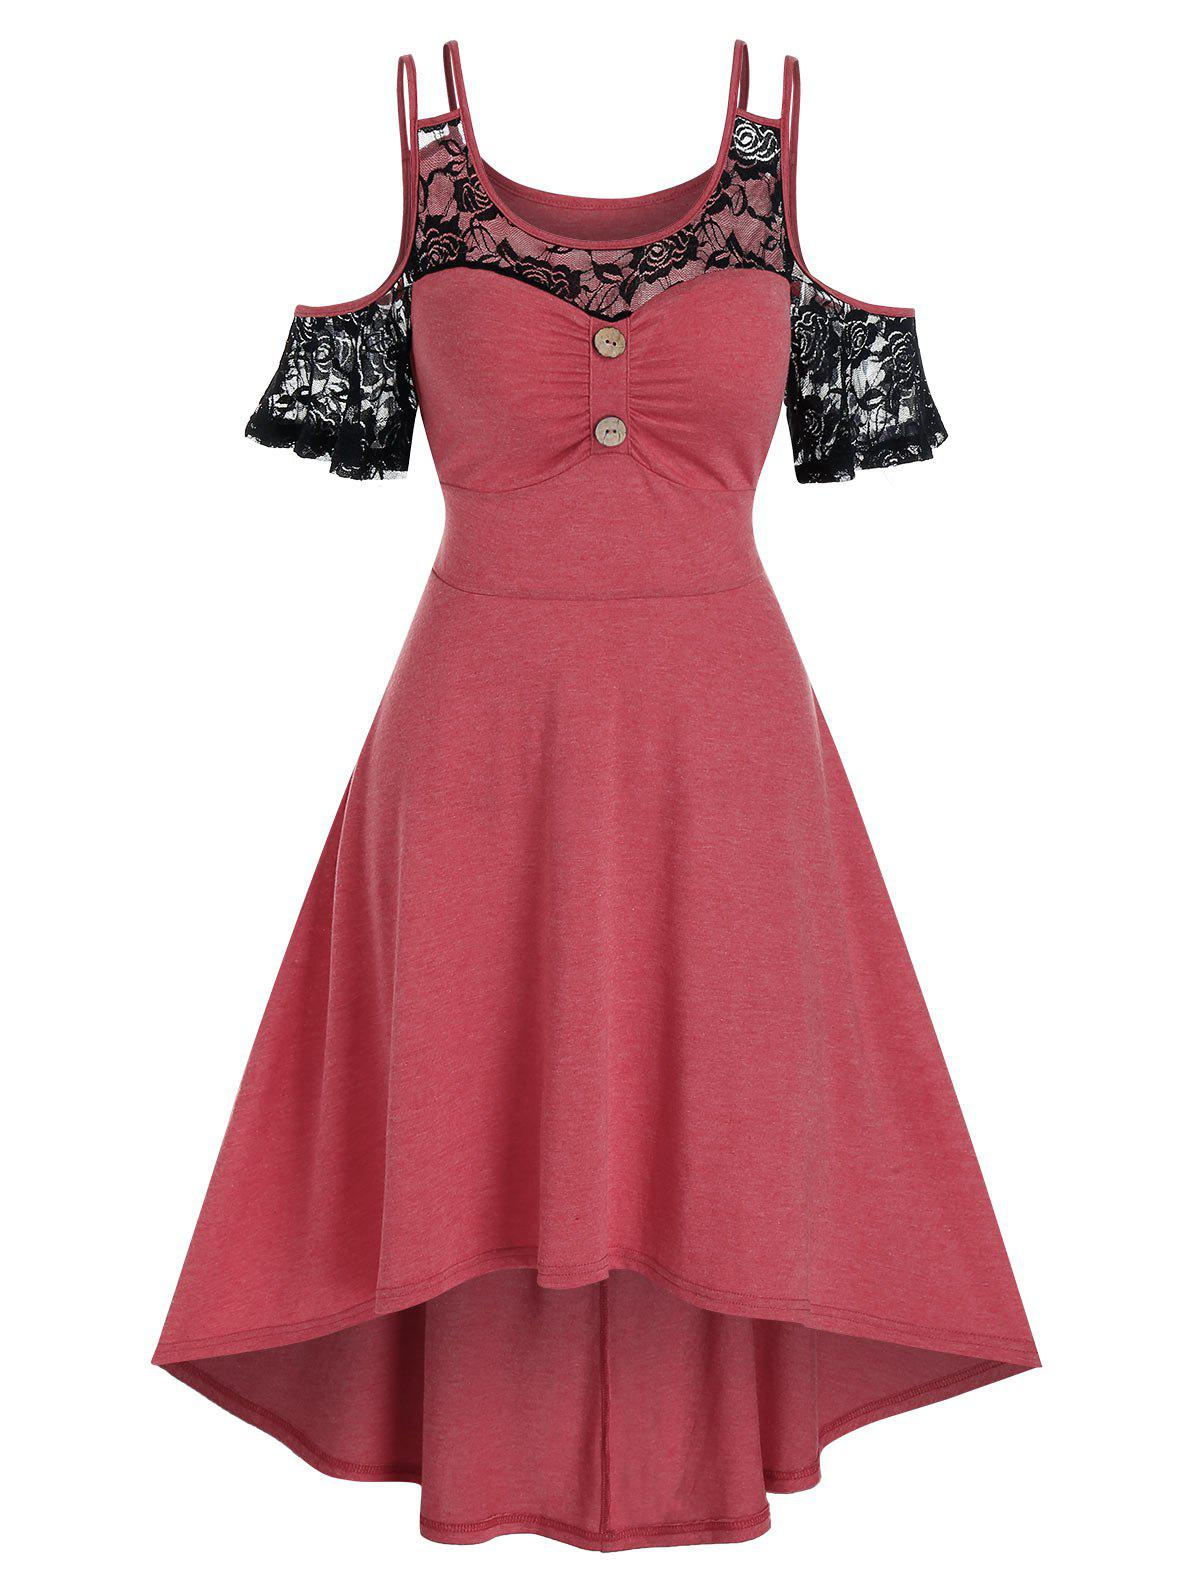 Lace Insert Cold Shoulder High Low Midi Dress - CHERRY RED M